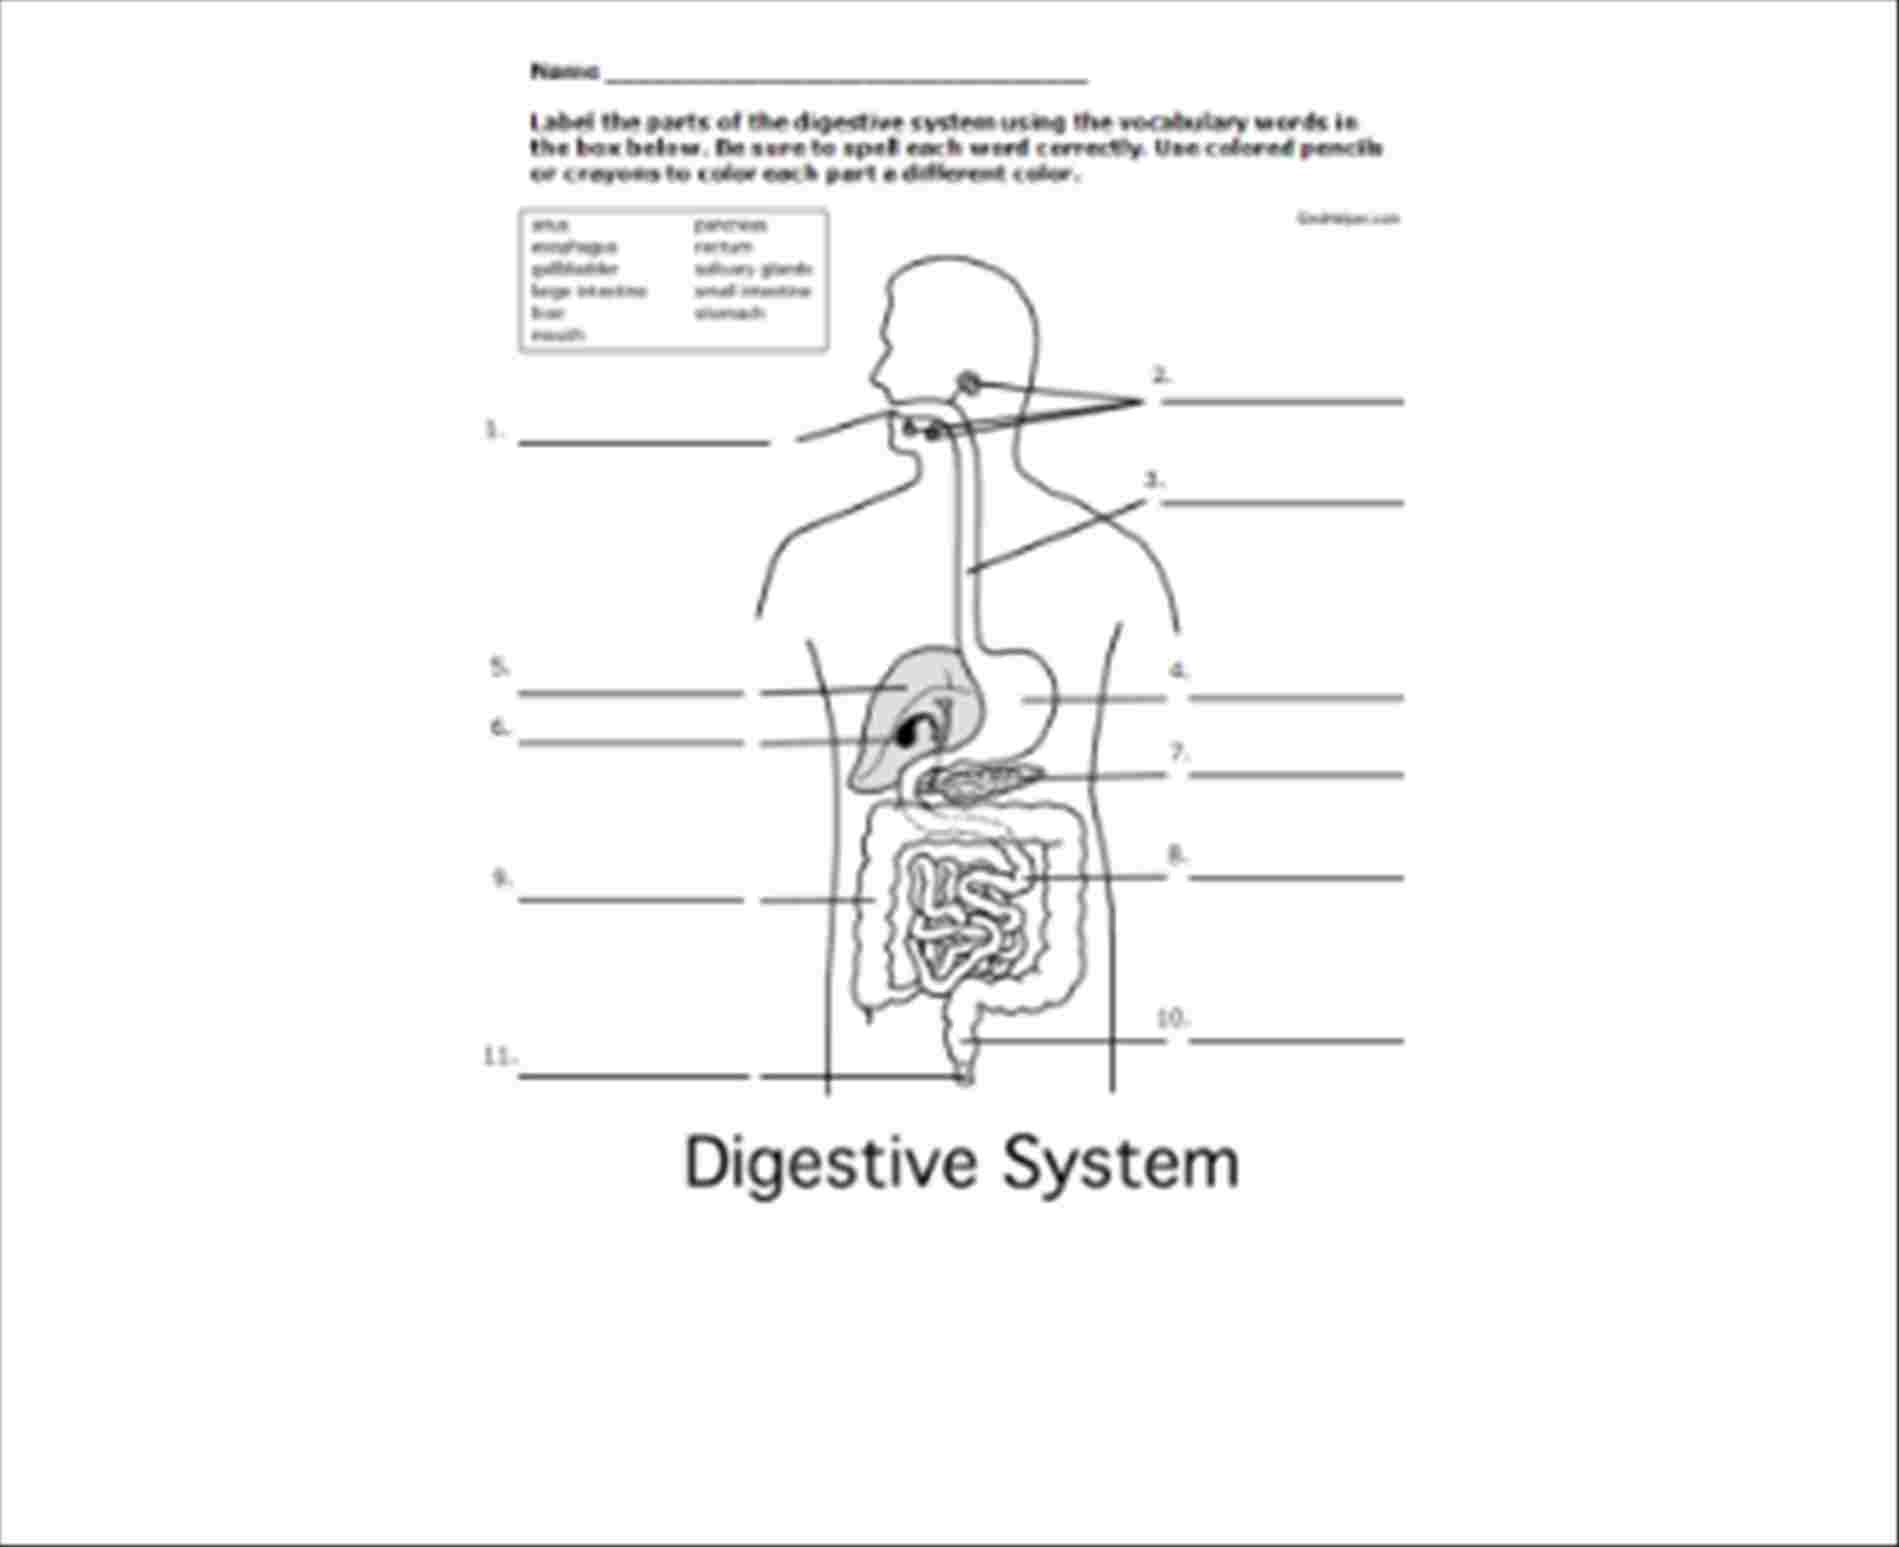 Digestive System Diagram Worksheet Diagram Of A Digestion System With Label Diagram Of Anatomy